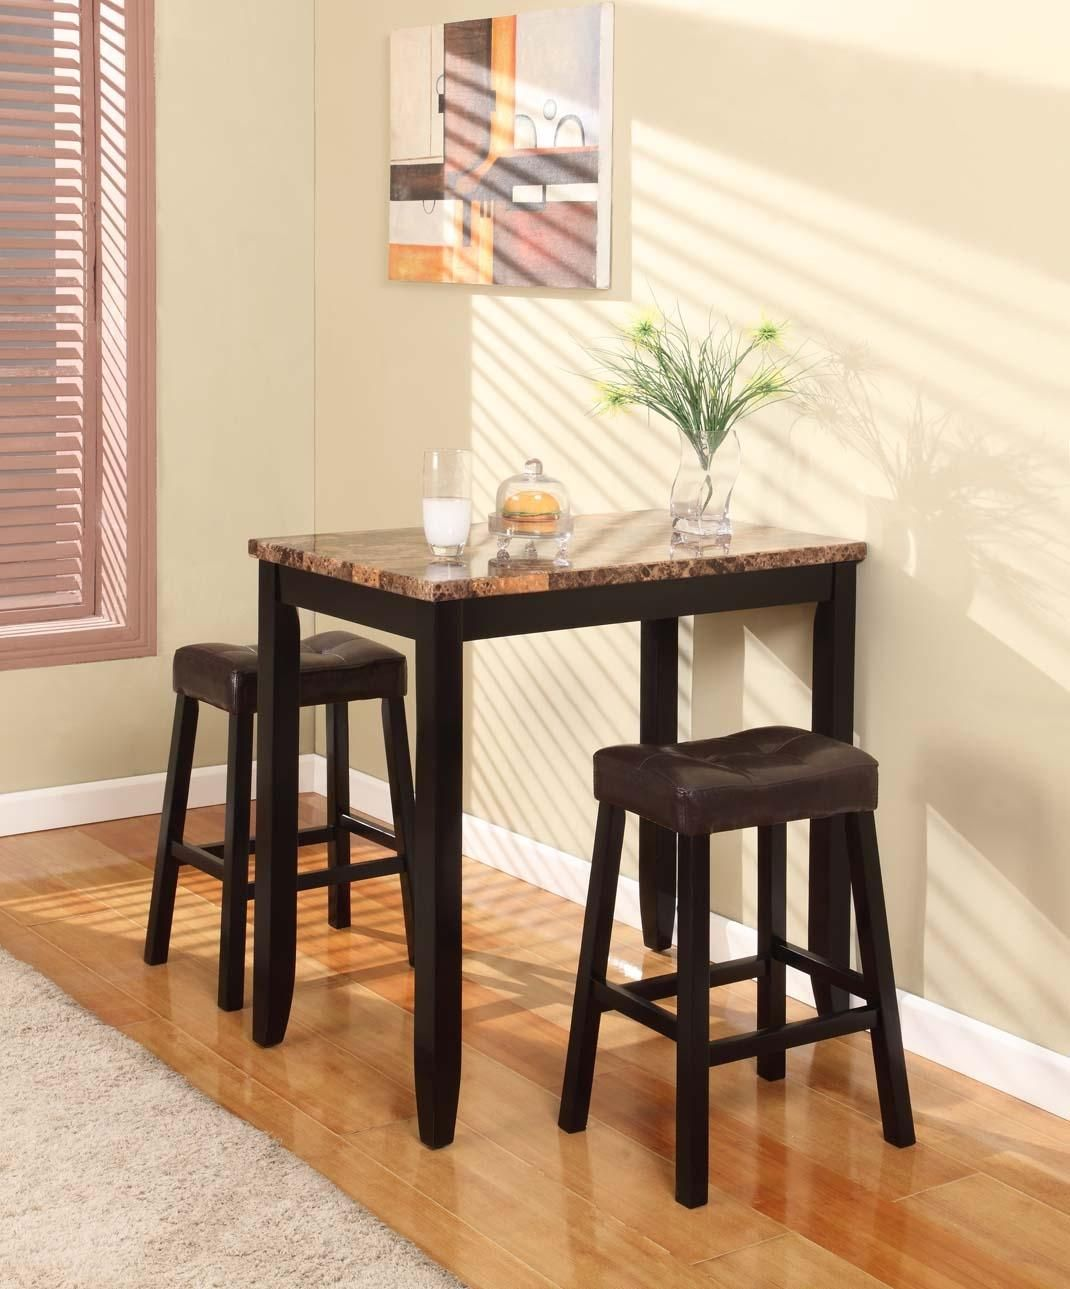 Beautiful 3 Pc Counter Height Glossy Print Marble Breakfast Table With Stools   The  Table Features A Contemporary Marble Look Veneer Table, Dark Brown Finish  Legs, ...